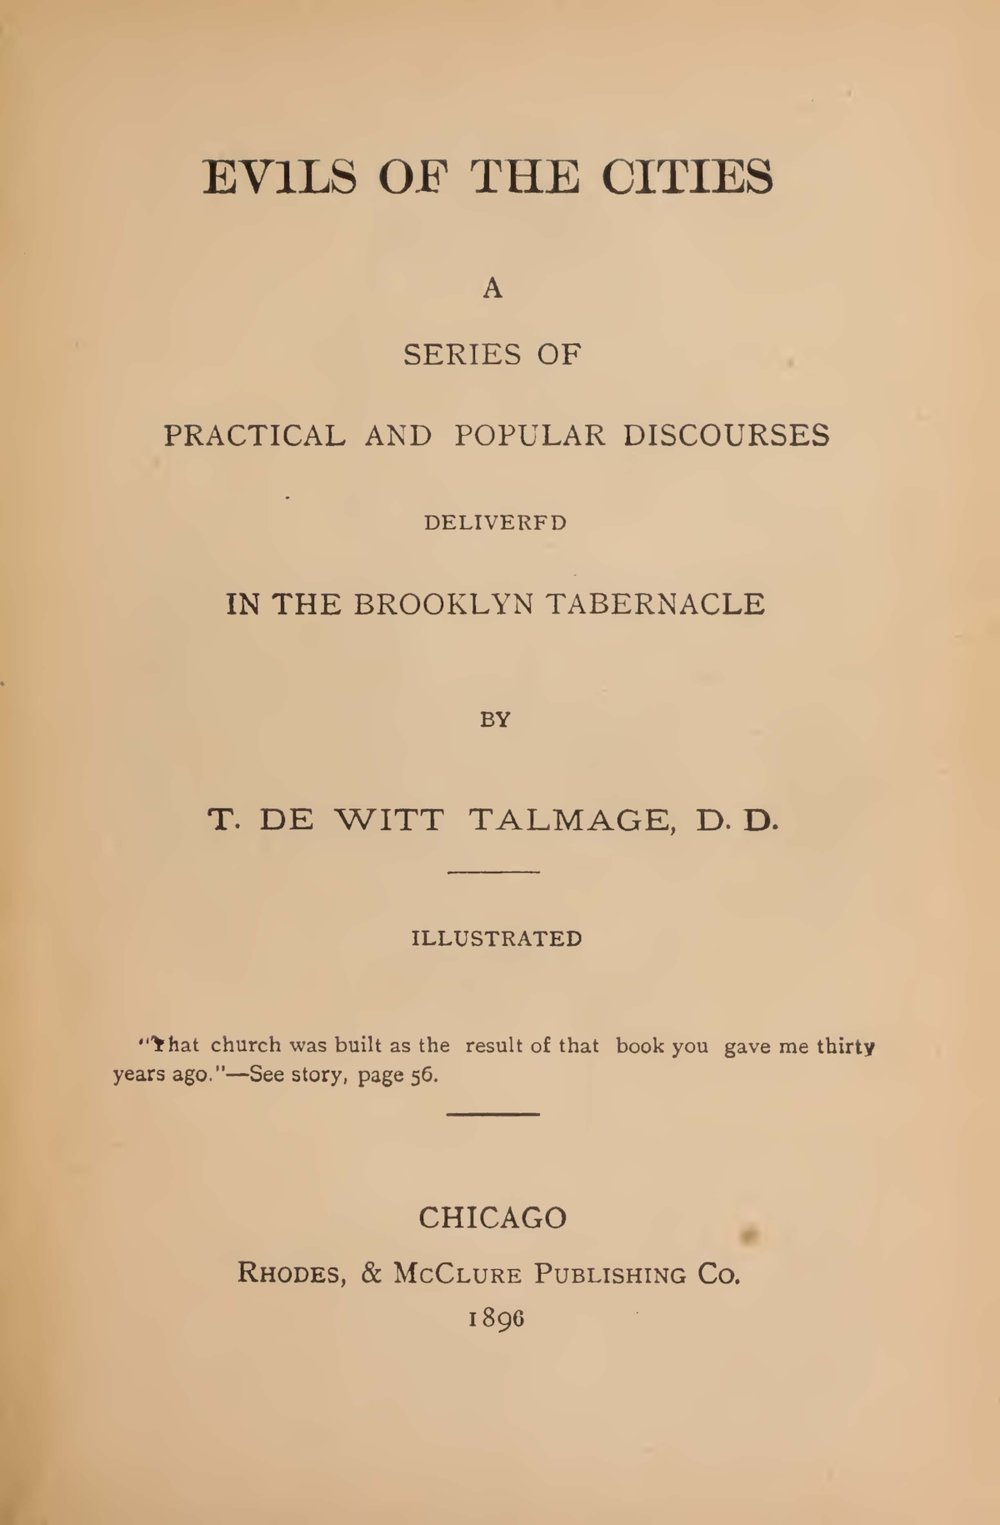 Talmage, Thomas De Witt, Evils of the Cities Title Page.jpg